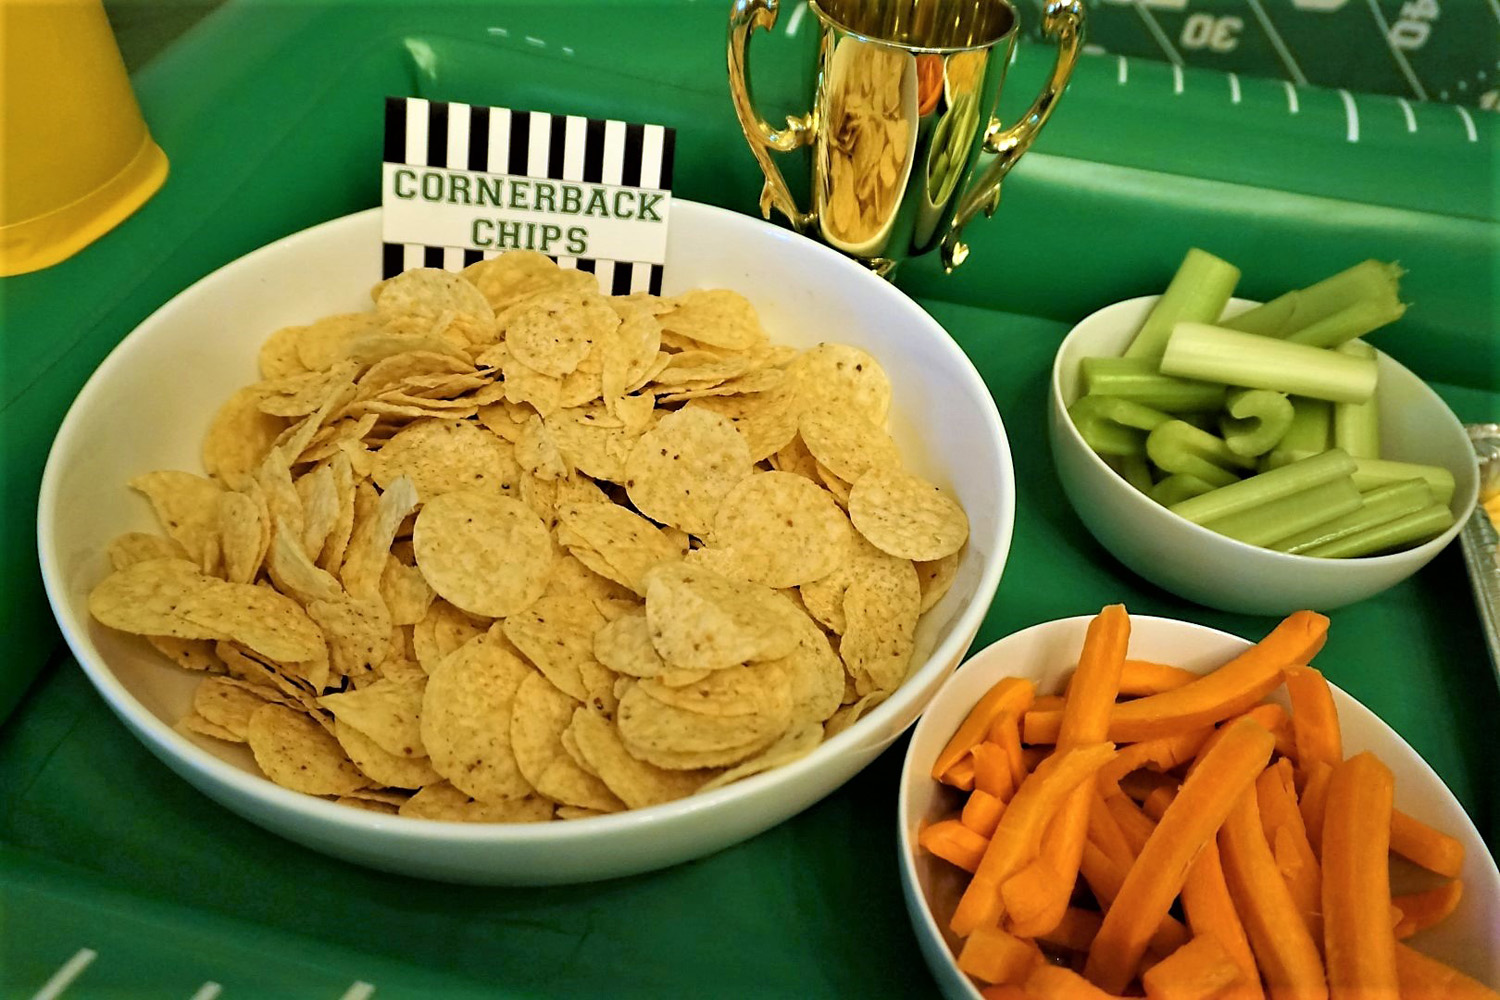 Chips, carrots, and celery make the best dippers for football snacks, especially buffalo chicken dip.